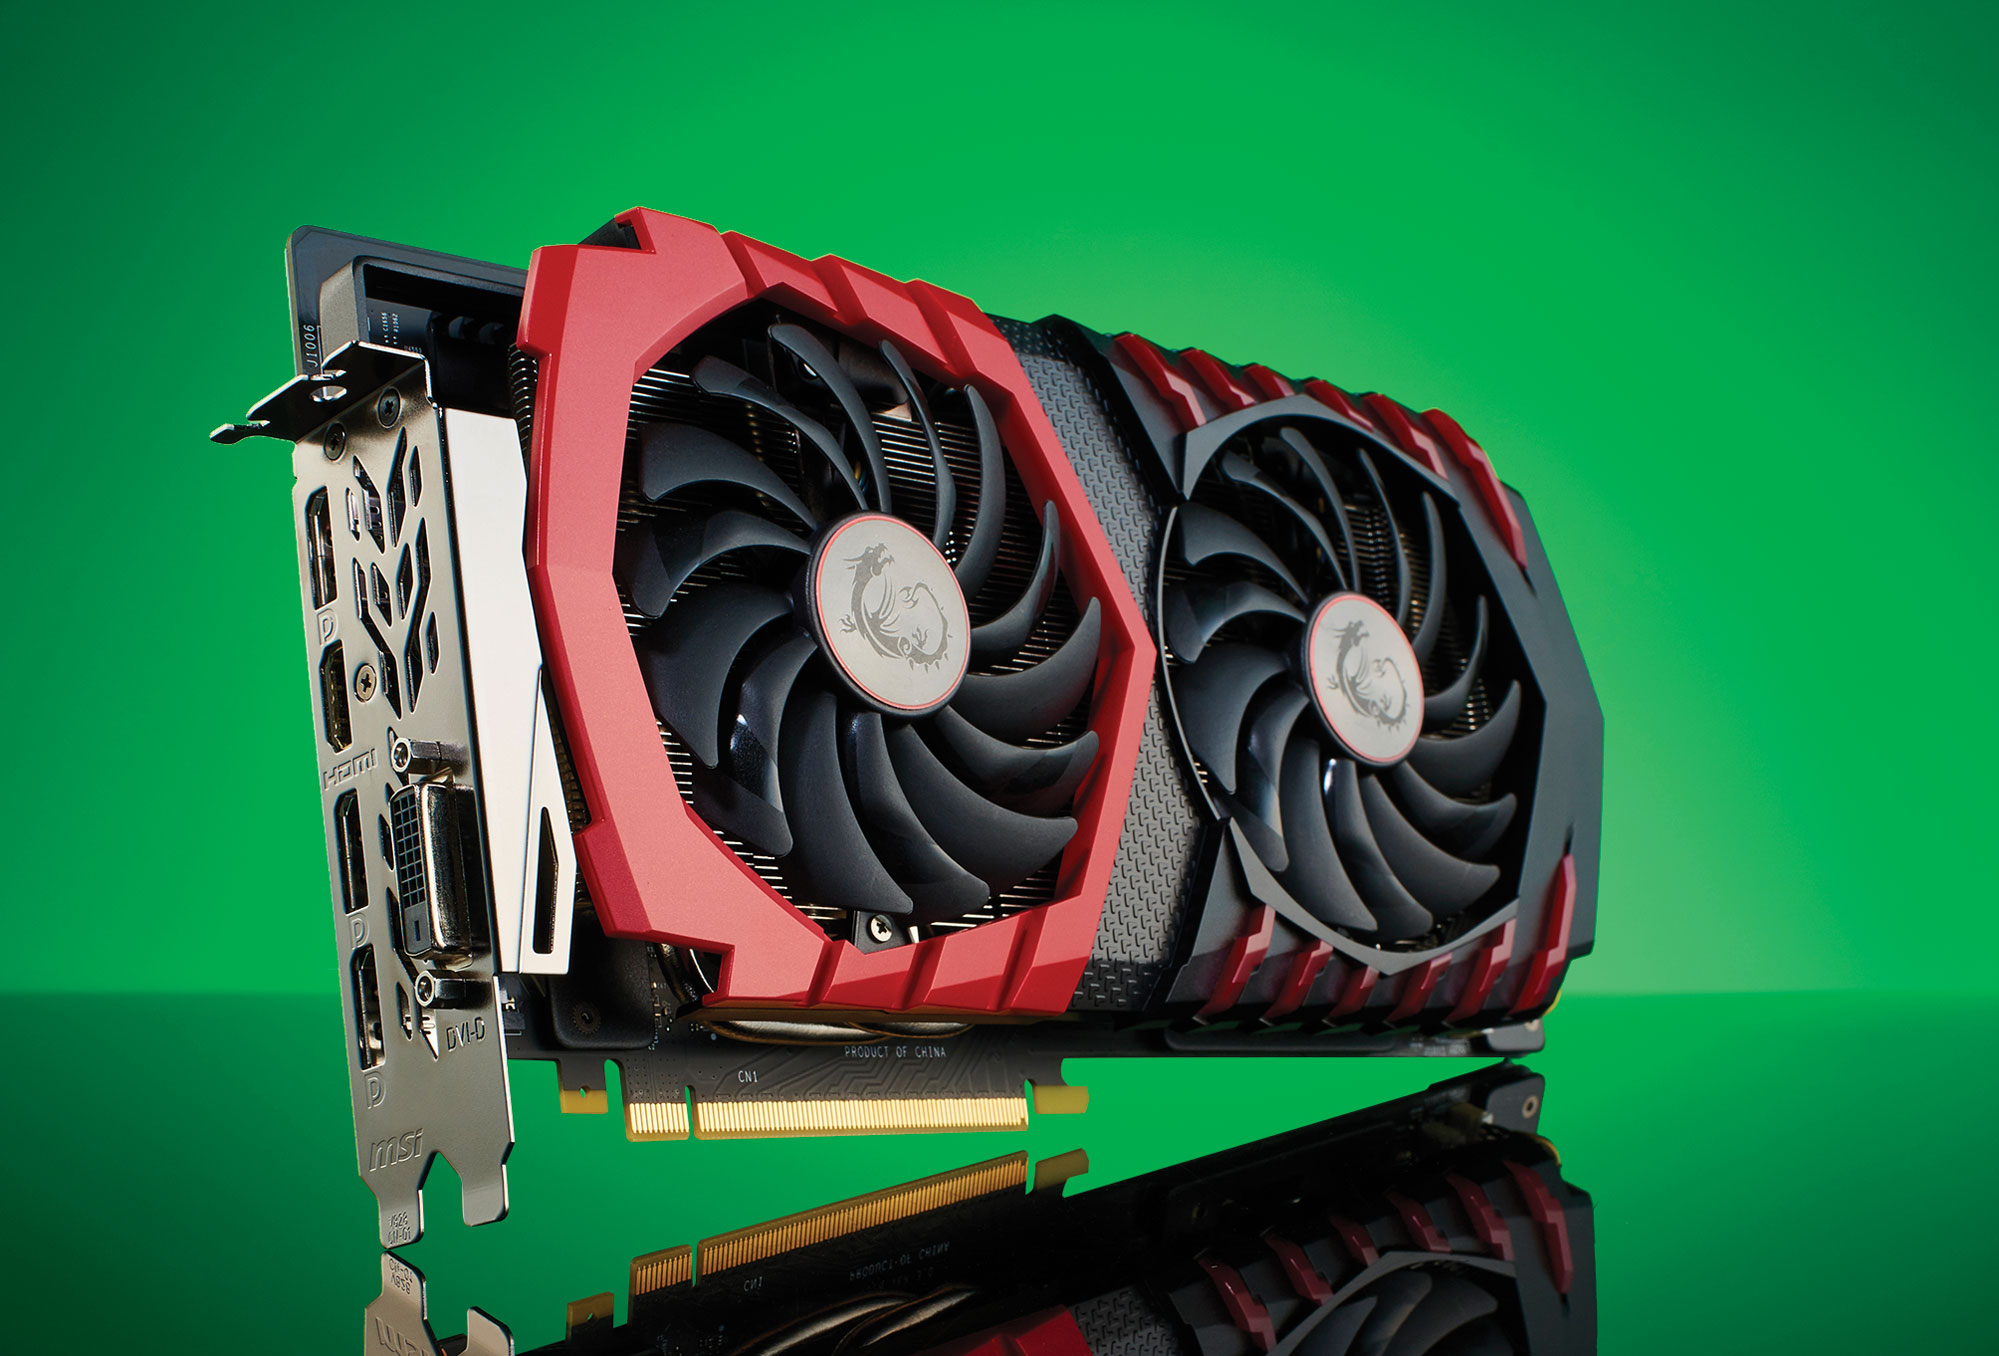 MSI GeForce GTX 1060 Gaming X 6GB [TEST]: Stor ydelse